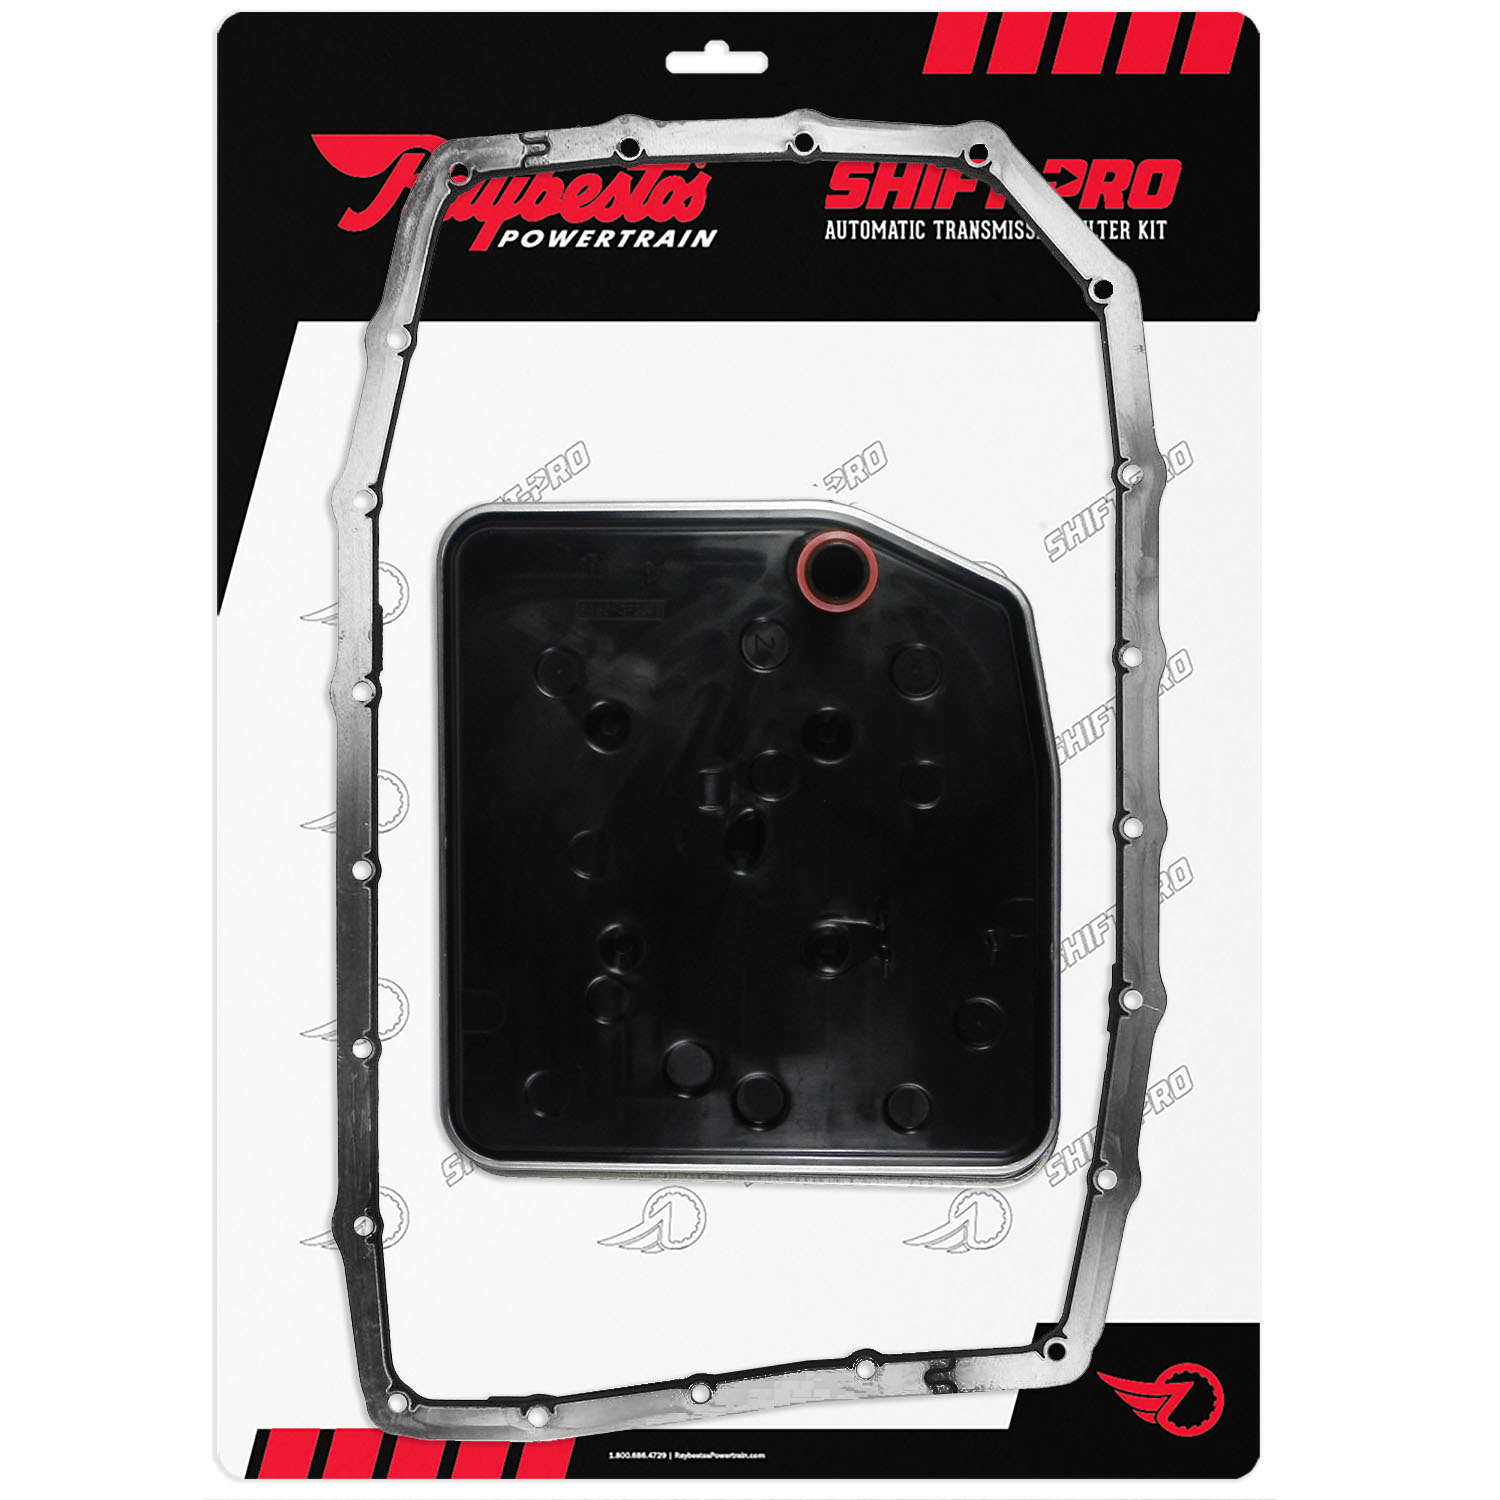 997272 | 2015-ON Shift-Pro Automatic Transmission Filter Kit